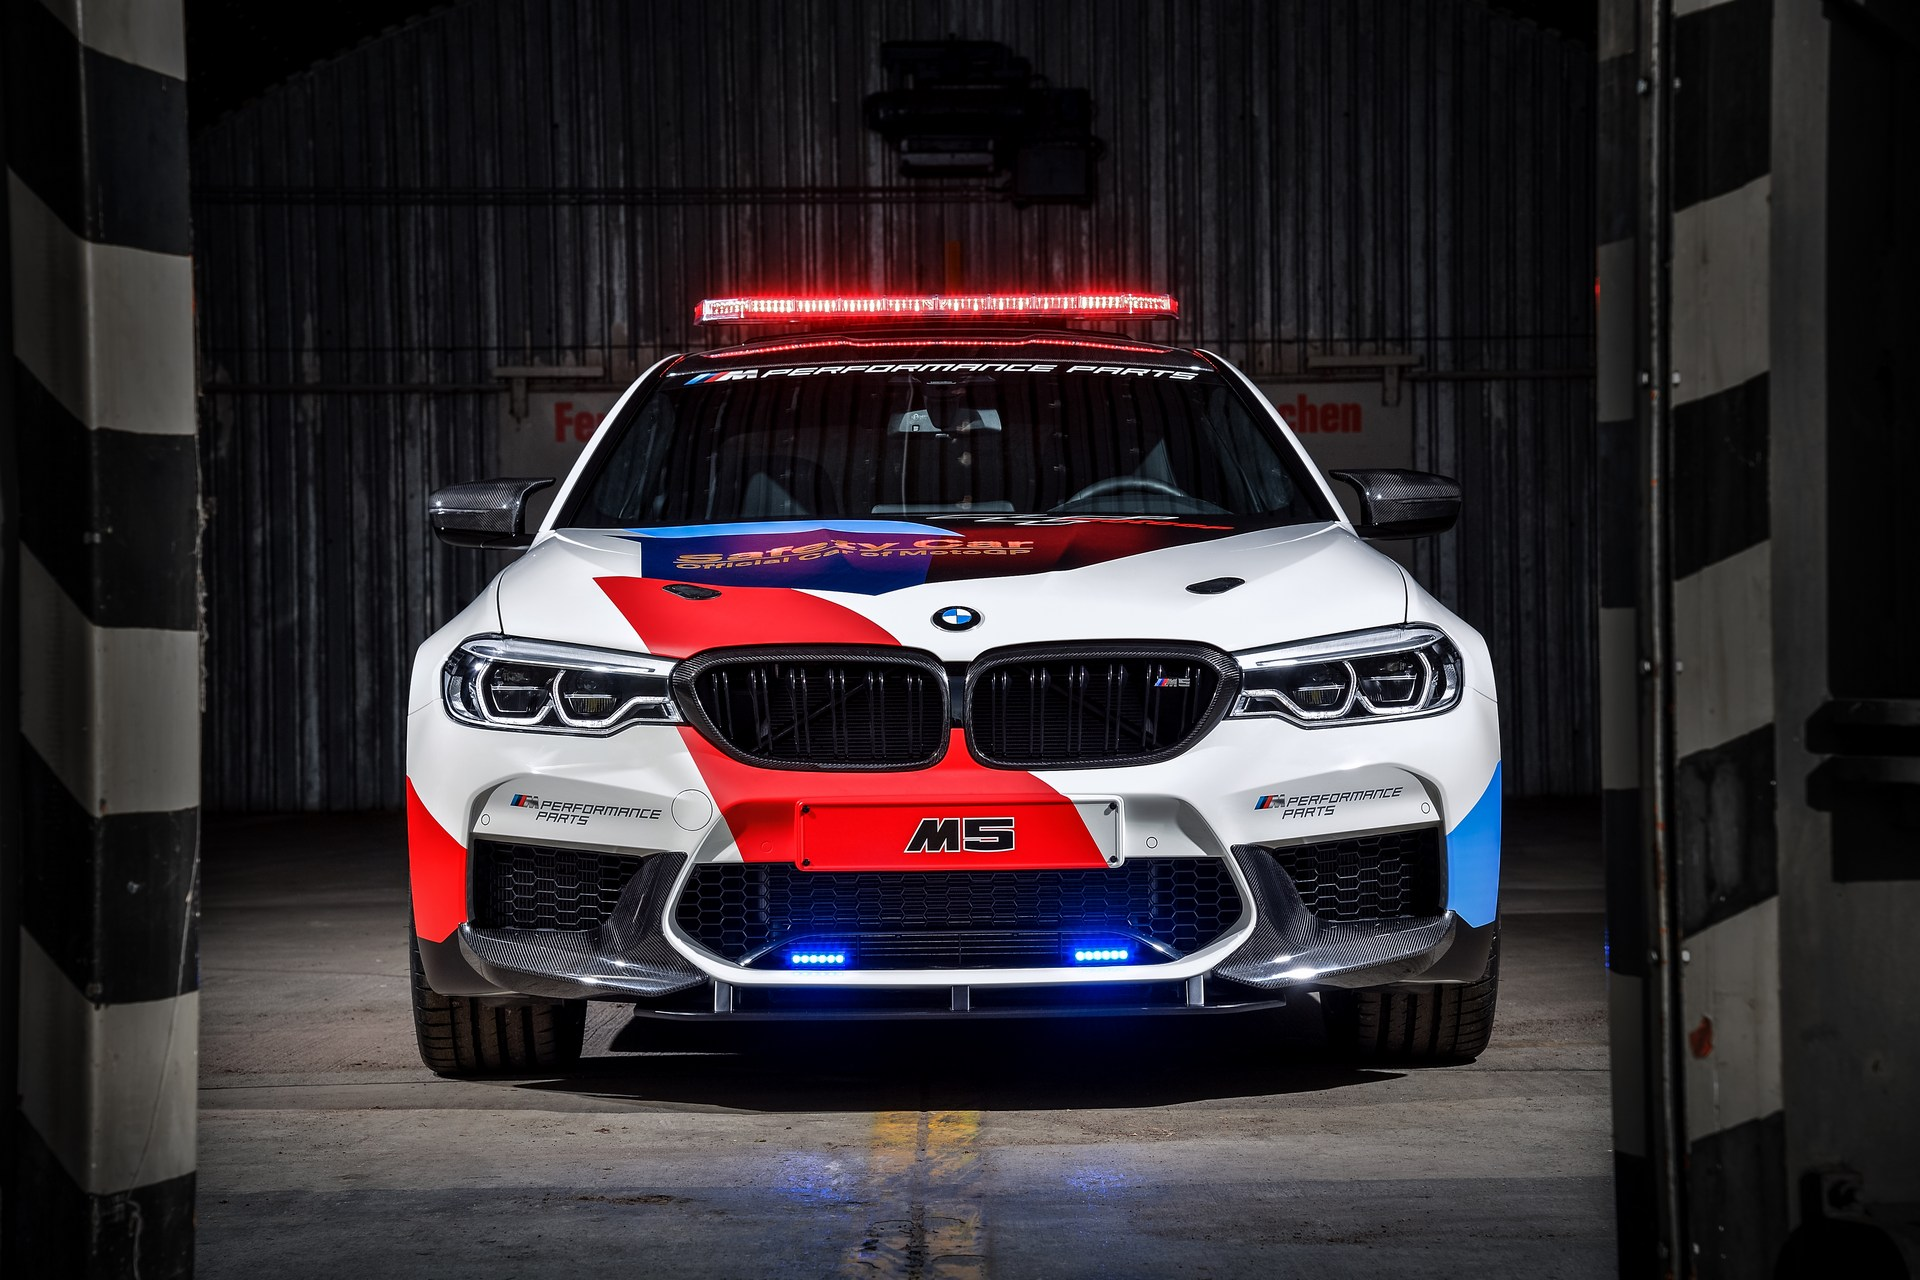 BMW_M5_Safety_Car_0000